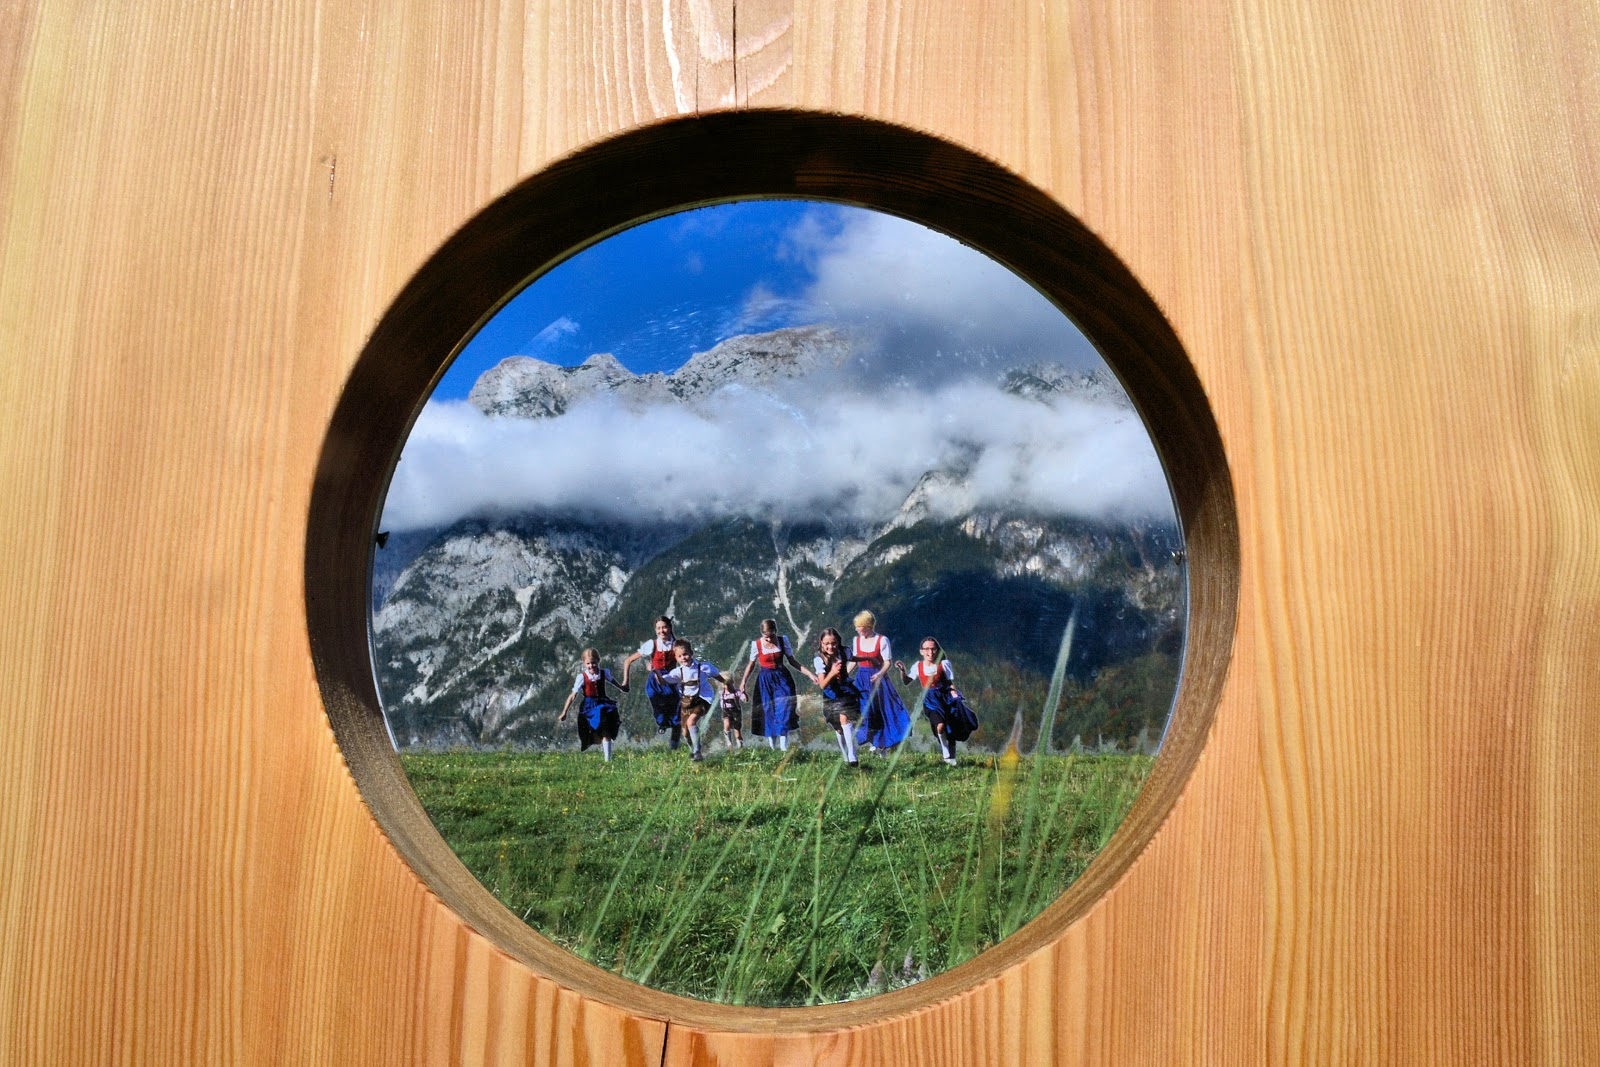 This clever sign welcomes you to the Sound of Music Trail. Look carefully and you'll see that the bottom half of this circular window (figures and grass in foreground) is actually a painting while the top half allows you to view the stunning background through clear glass.